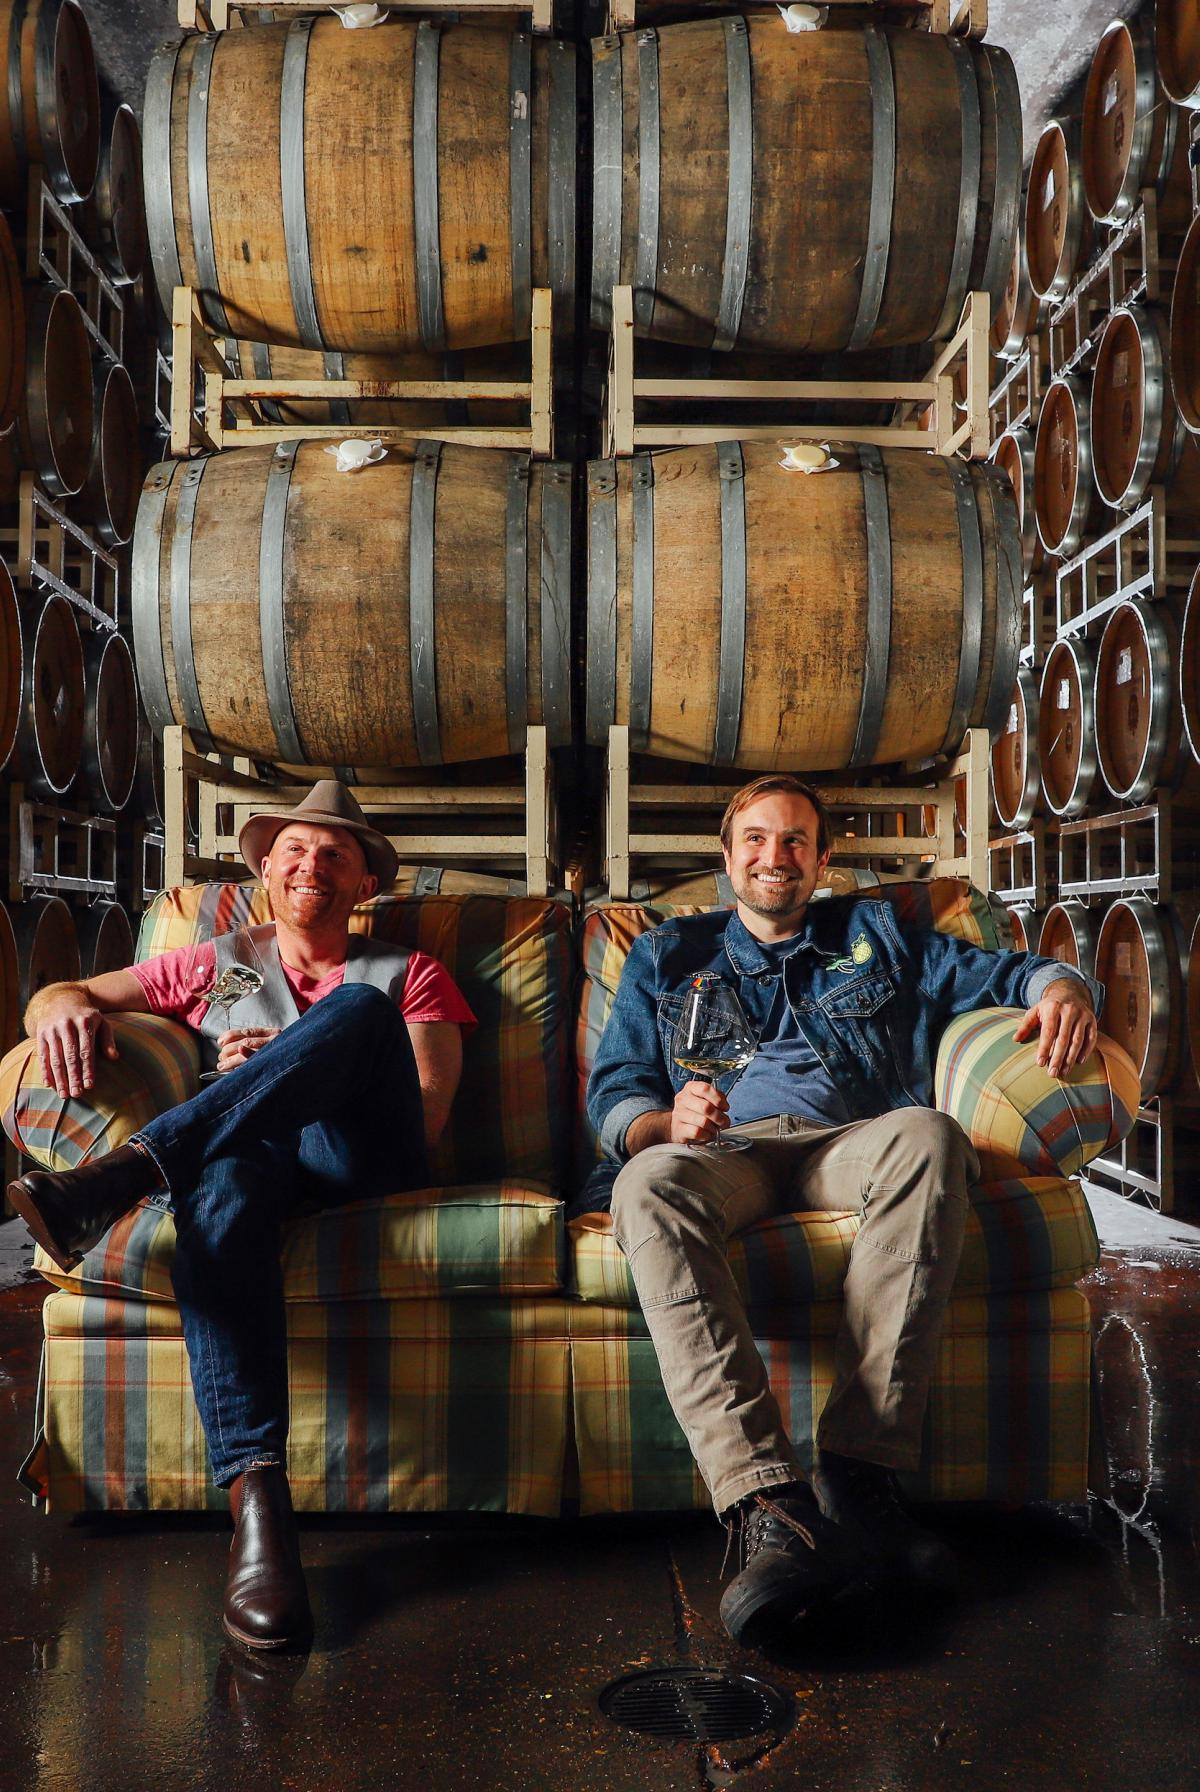 Shane and Myles holding wine glasses sitting on a plaid couch in the cellar